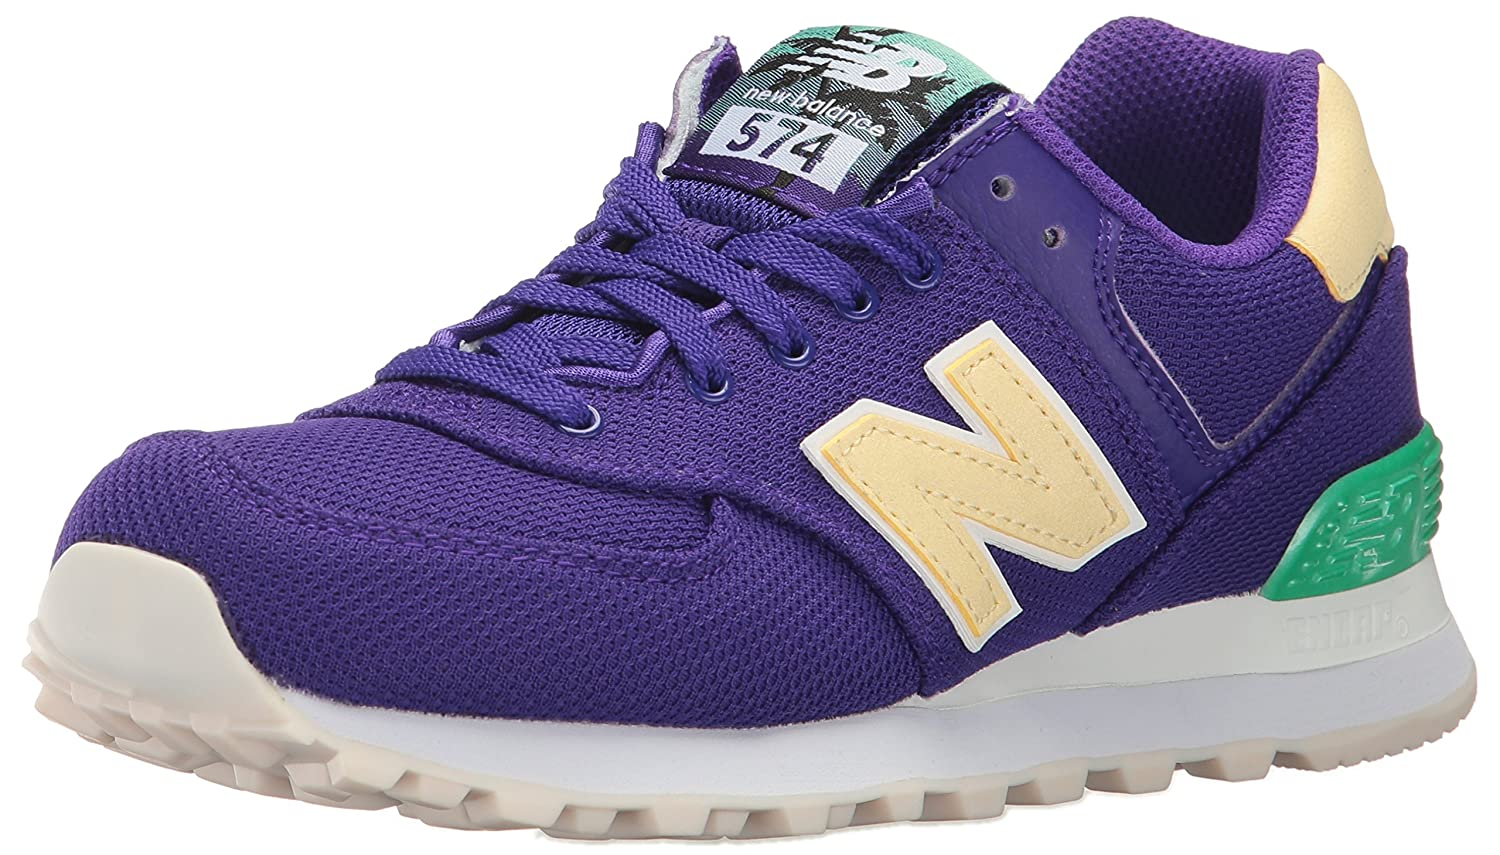 New Balance Women's 574 Miami Palms Pack Lifestyle Fashion Sneaker B01LWPXW6W 5.5 B(M) US|Deep Violet/Pollen